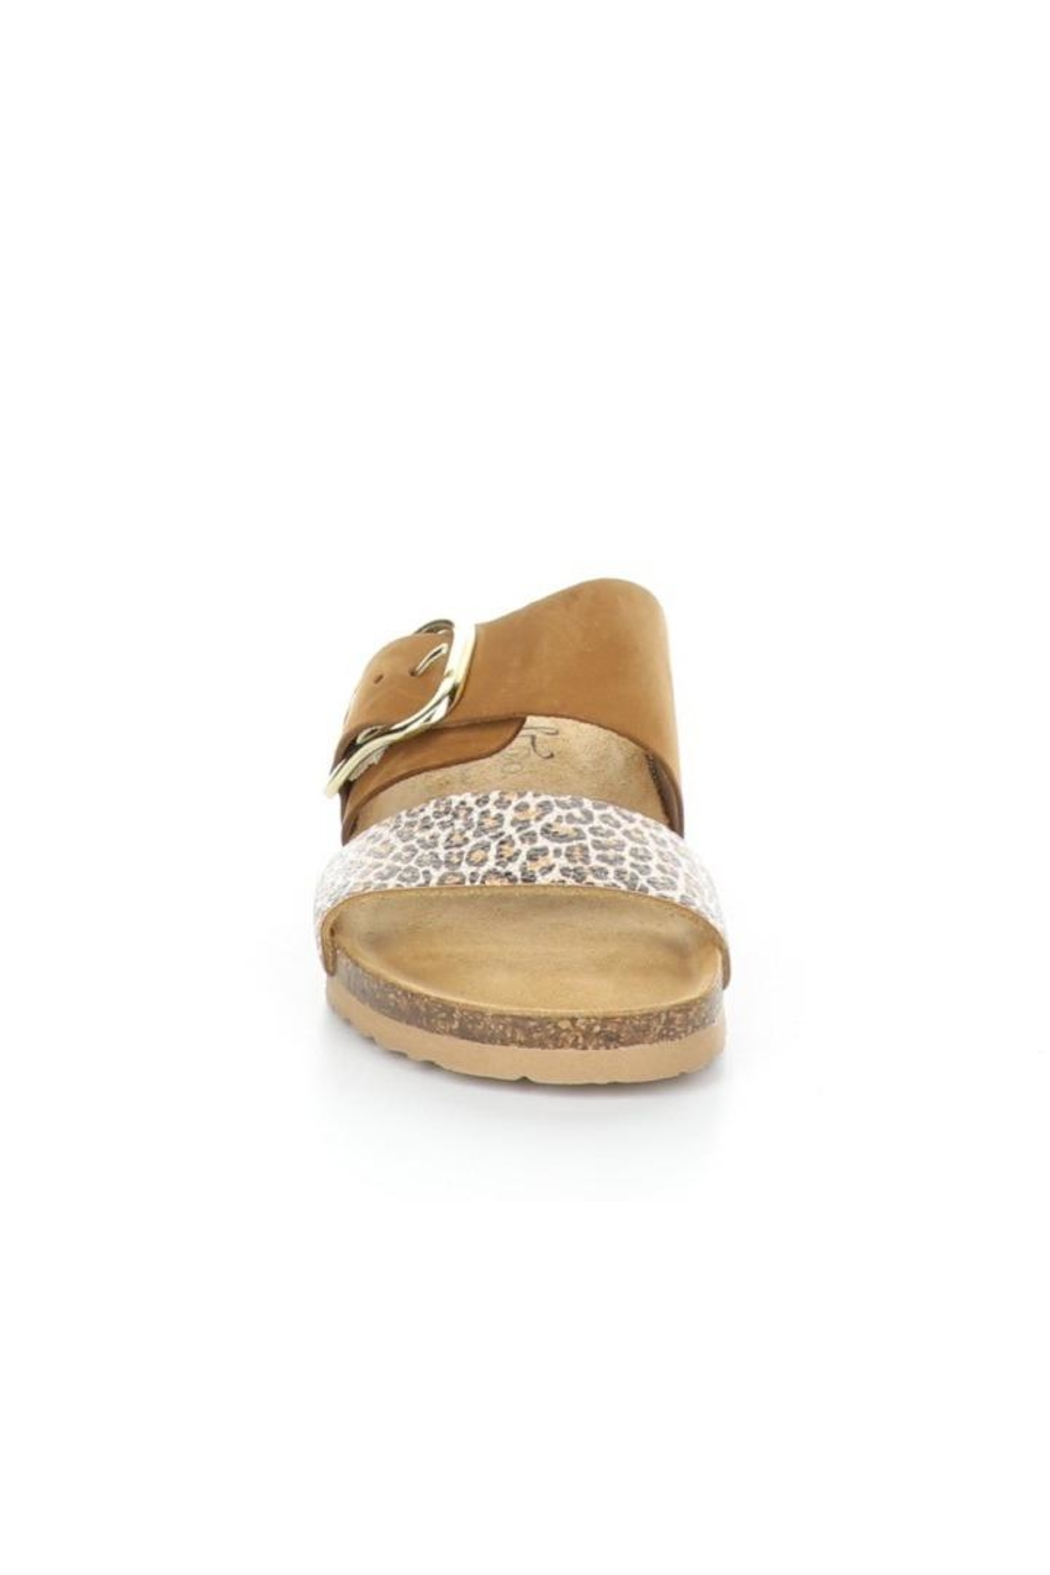 Bos & Co. Lapo Sandal In Brandy / Angelica - Front Full Image